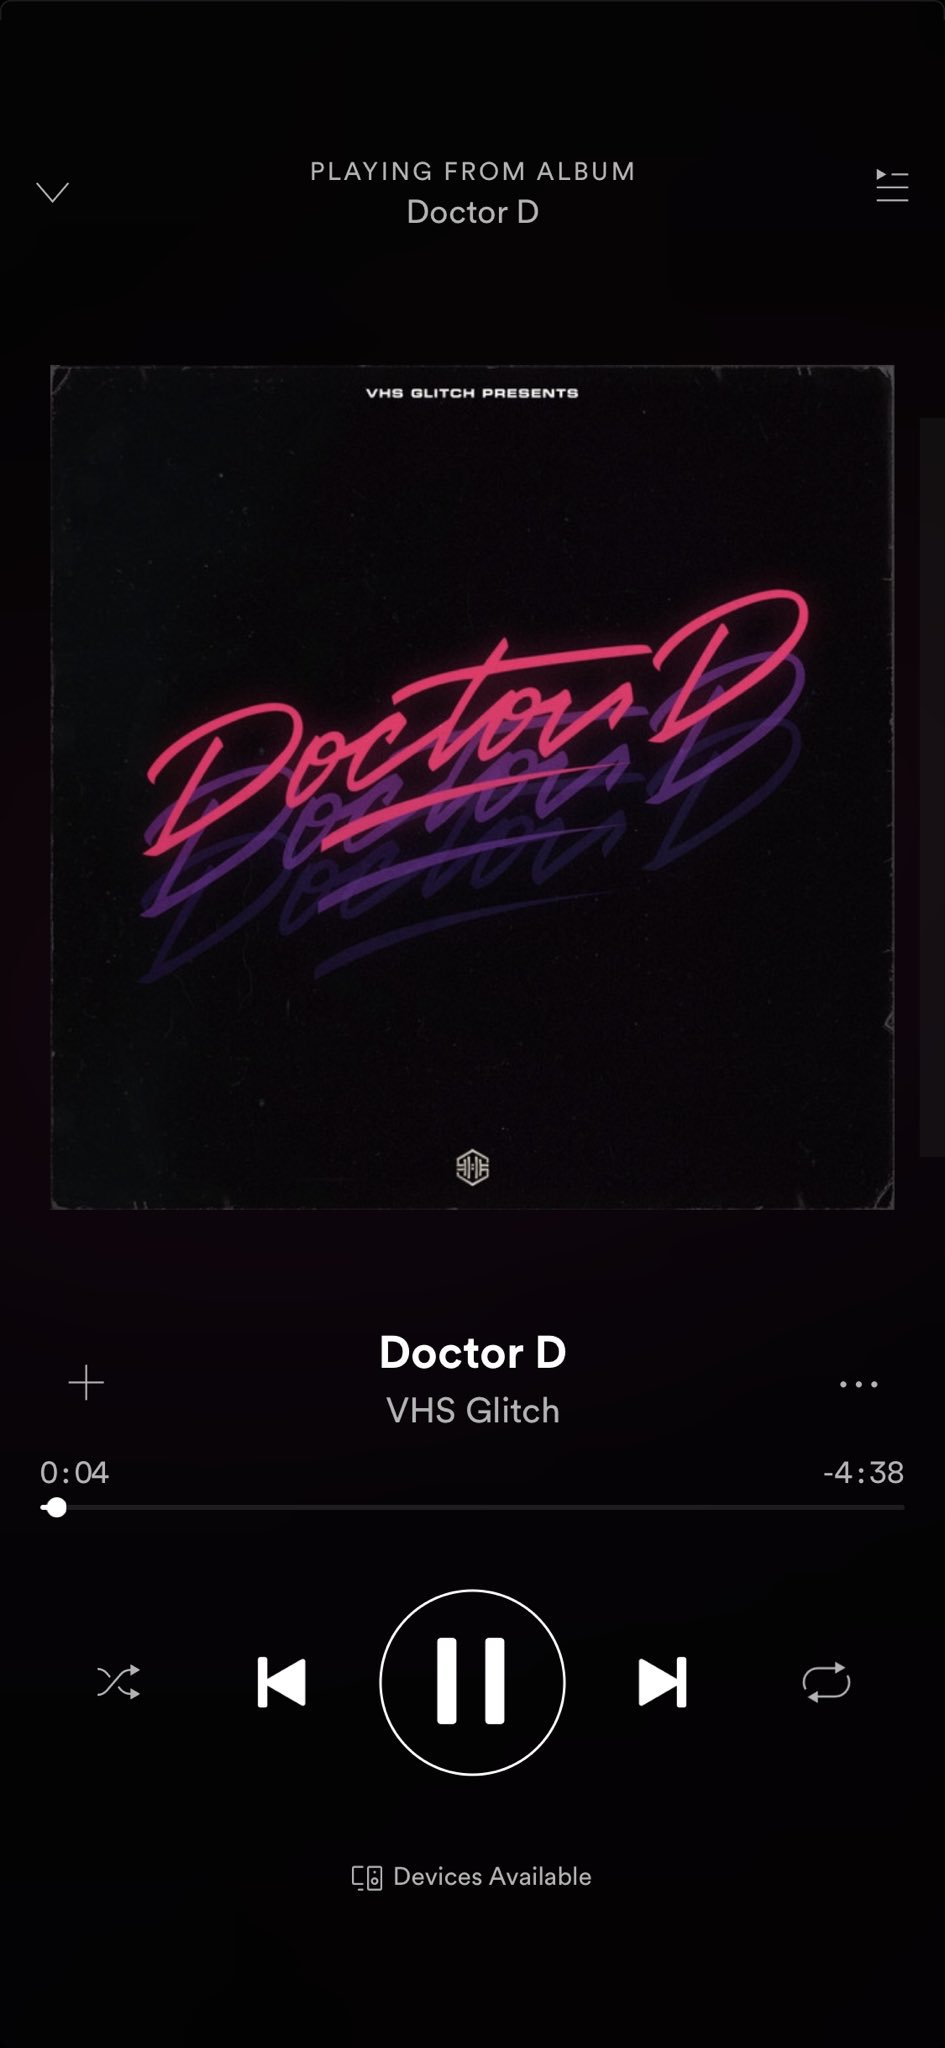 When is the album dropping @DrDisRespect @VHSGlitch https://t.co/si26u2cRdw